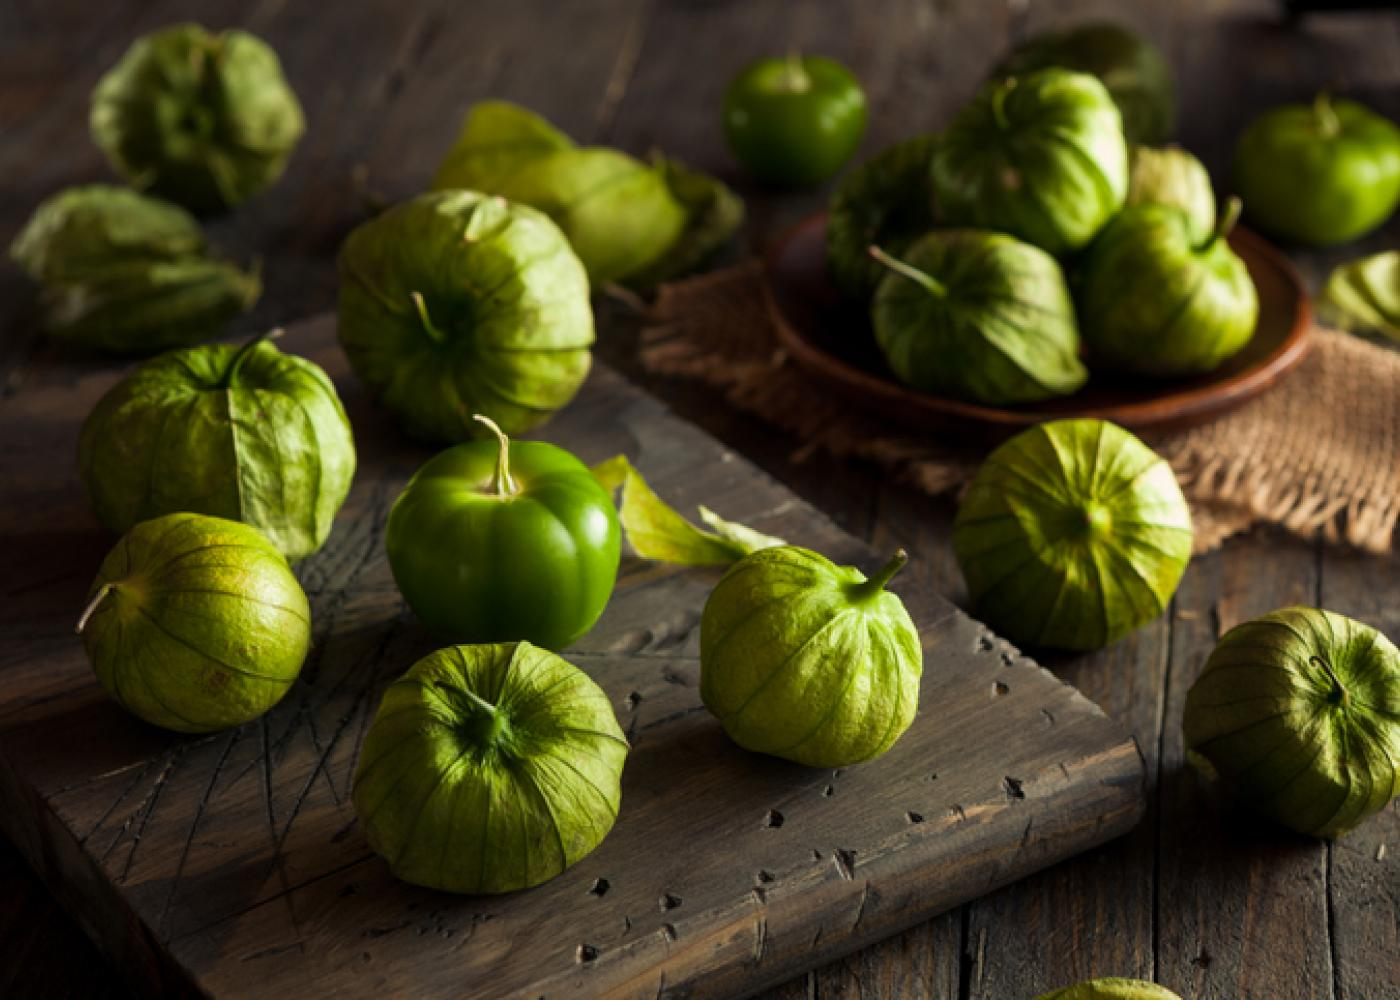 tomatillos on a table